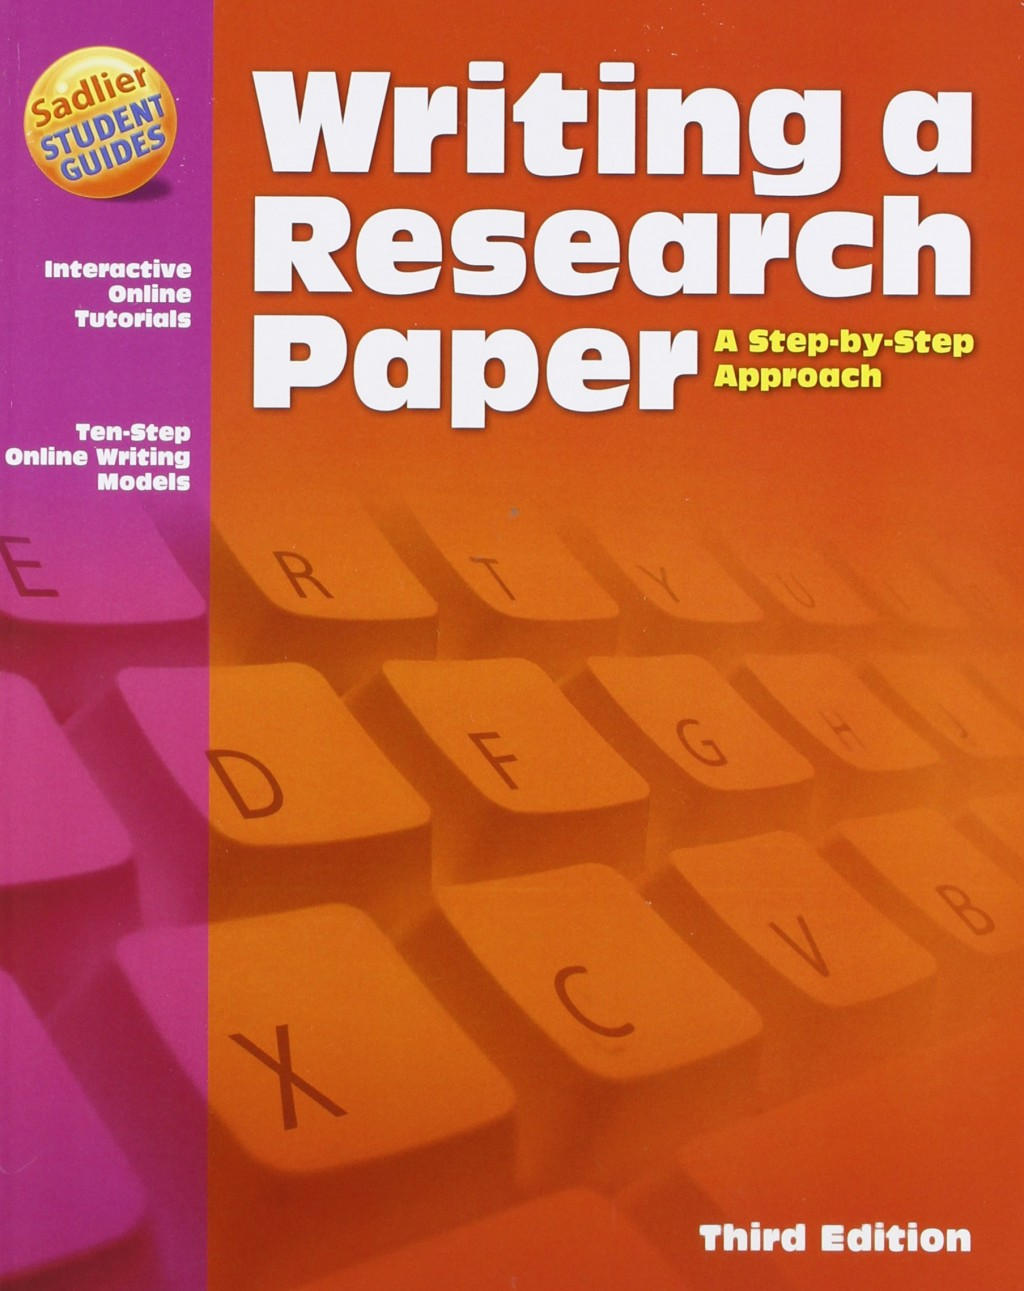 019 Research Paper Writing Papers Unique A Complete Guide Pdf Download James D Lester Large